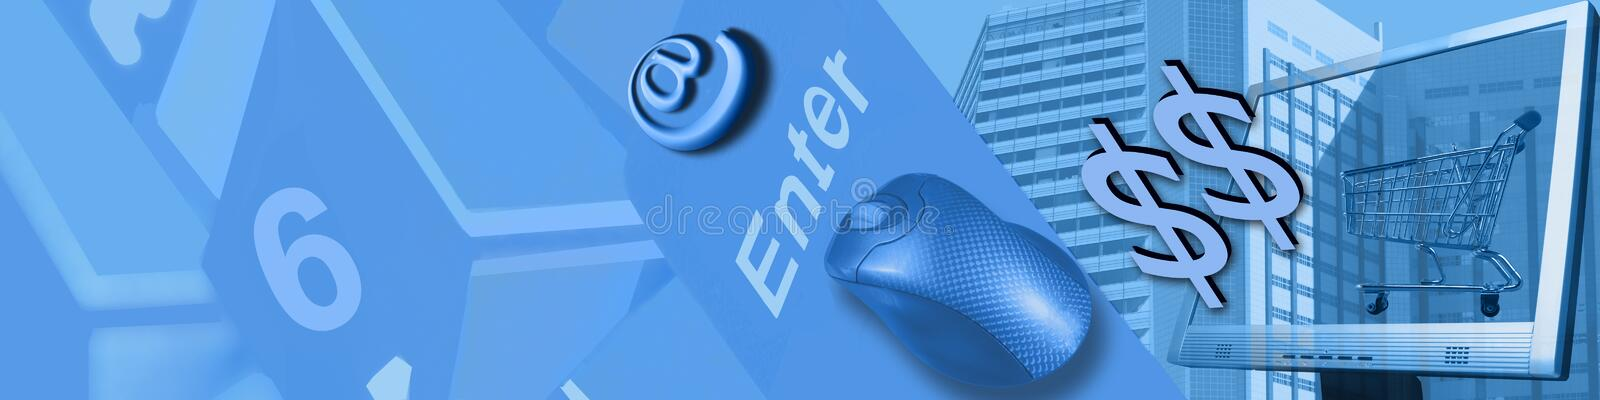 Technology and Ecommerce. The keyboard, business buildings, mouse, screen, shopping cart, @, and $-signs are metaphors and leading to the title Technology and E royalty free illustration